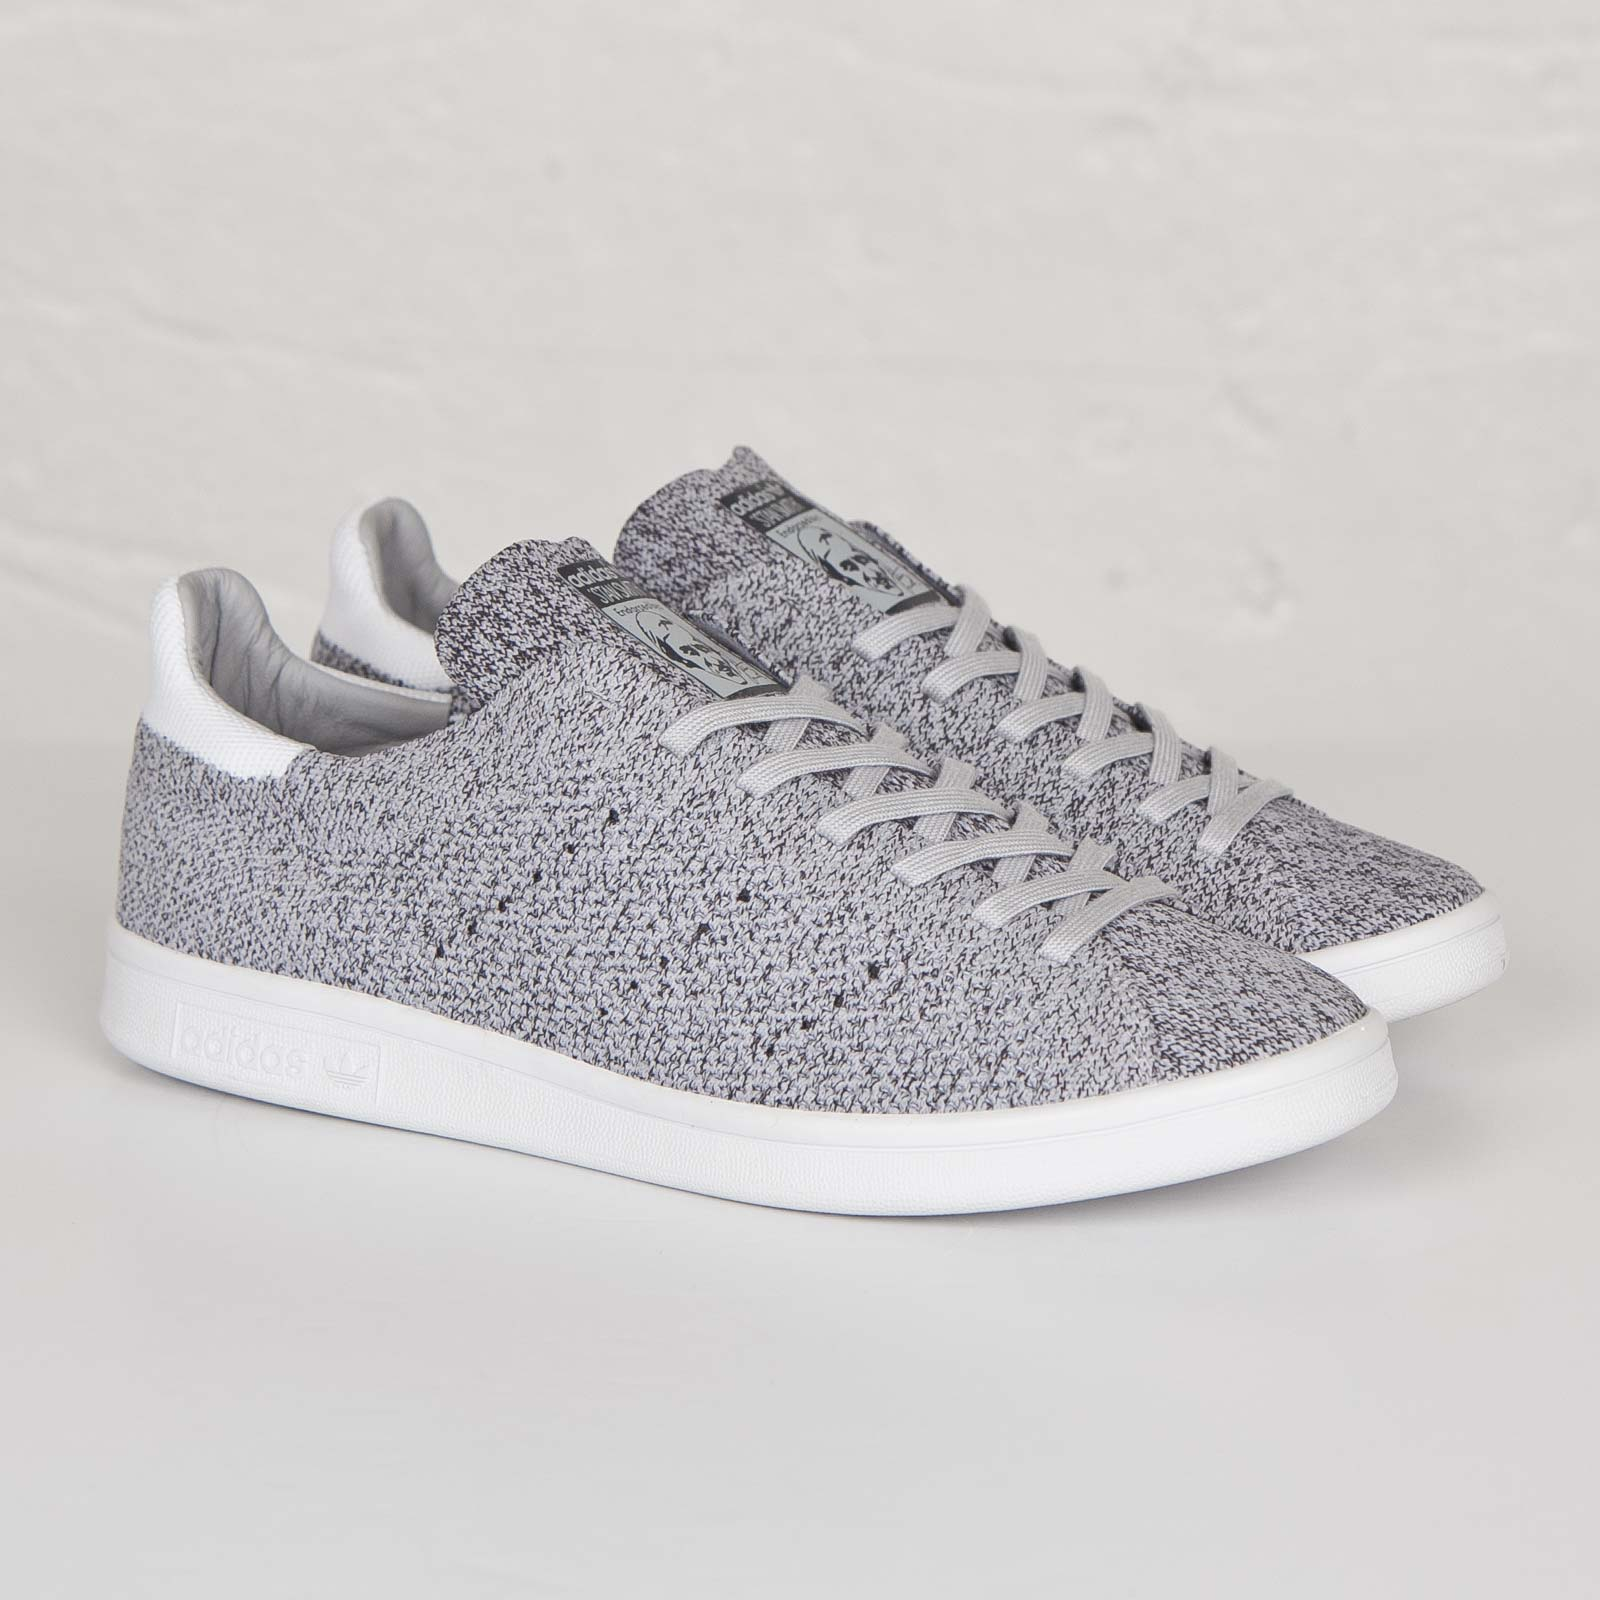 uk availability bf934 3b3ce adidas Stan Smith Primeknit NM - B27152 - Sneakersnstuff ...